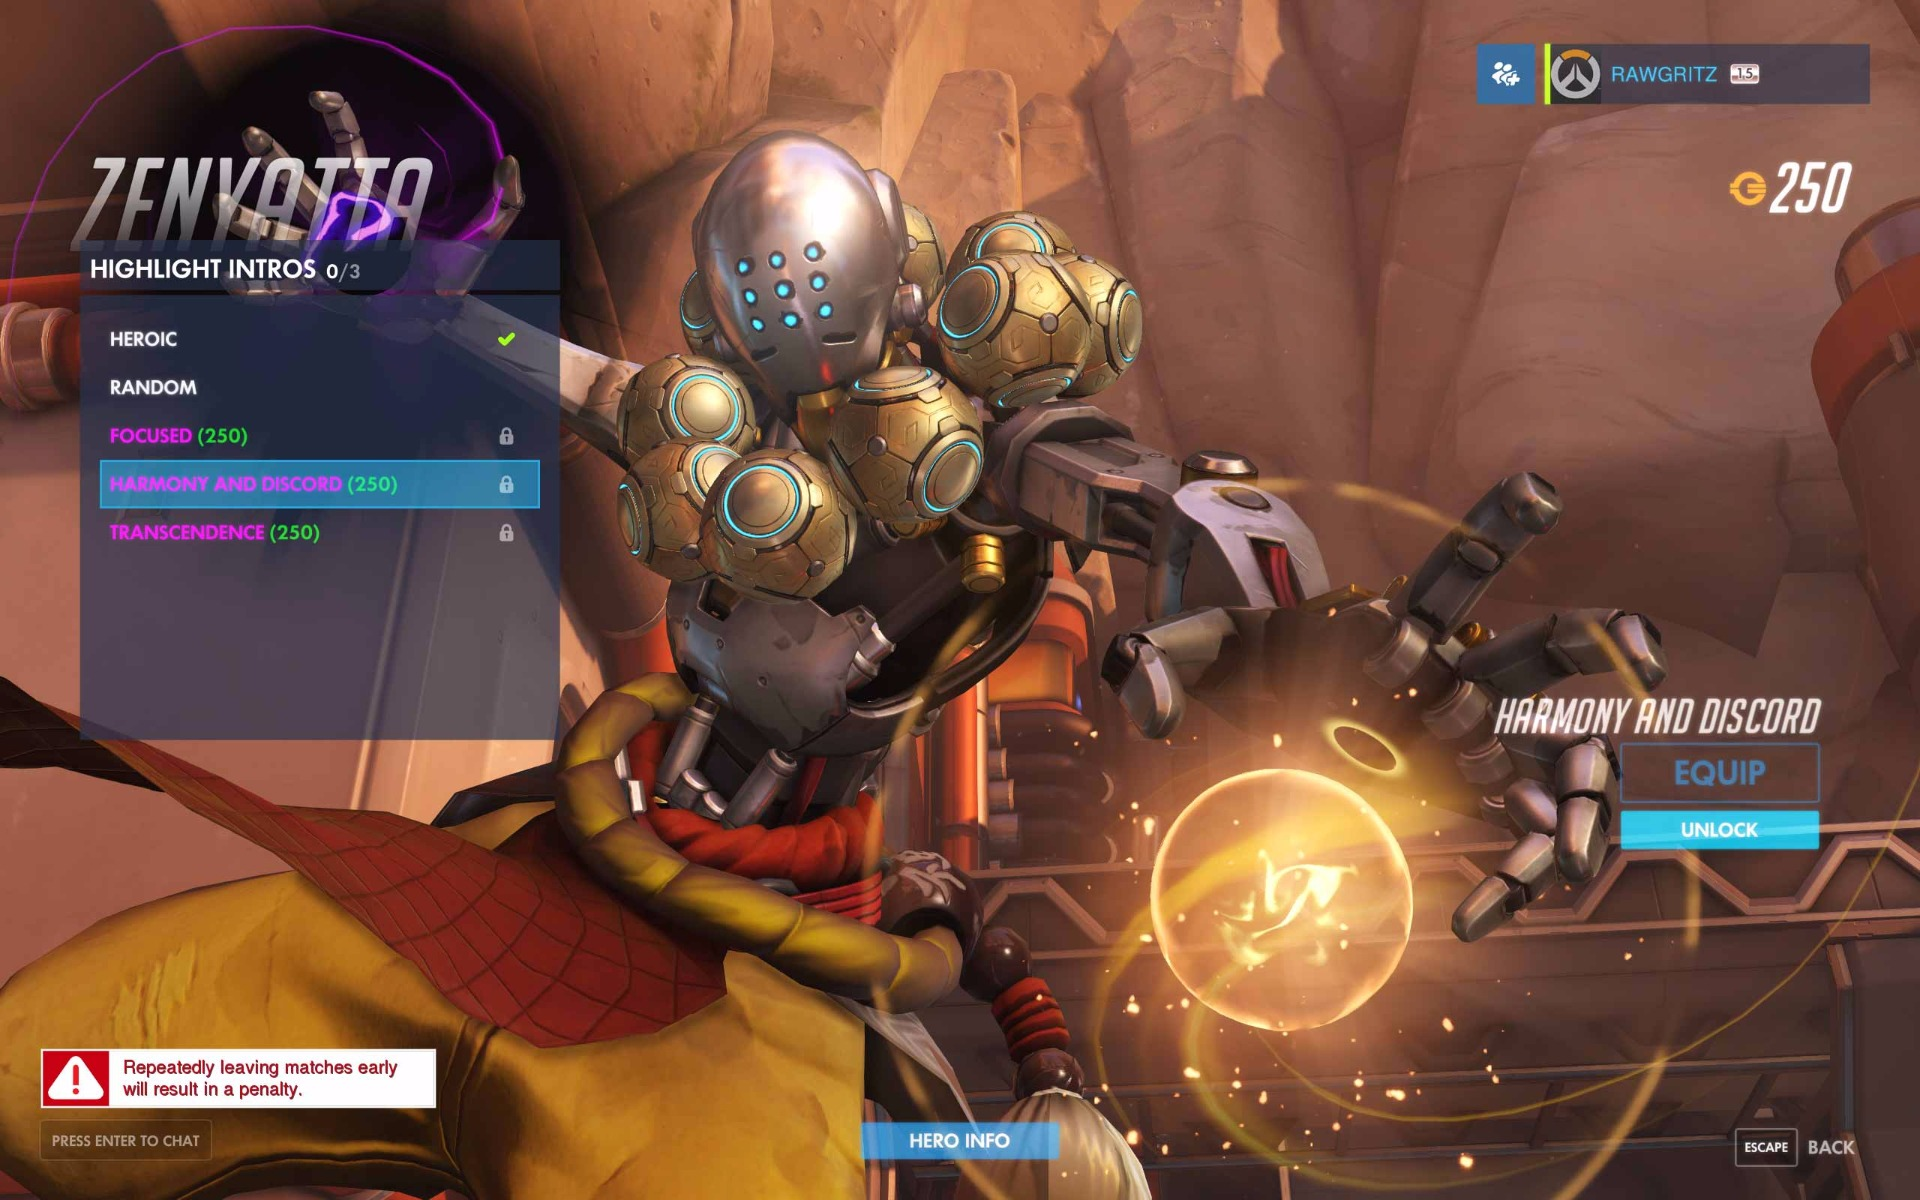 Overwatch PC Gameplay And Performance Review: Blizzard's First Shooter Soars High